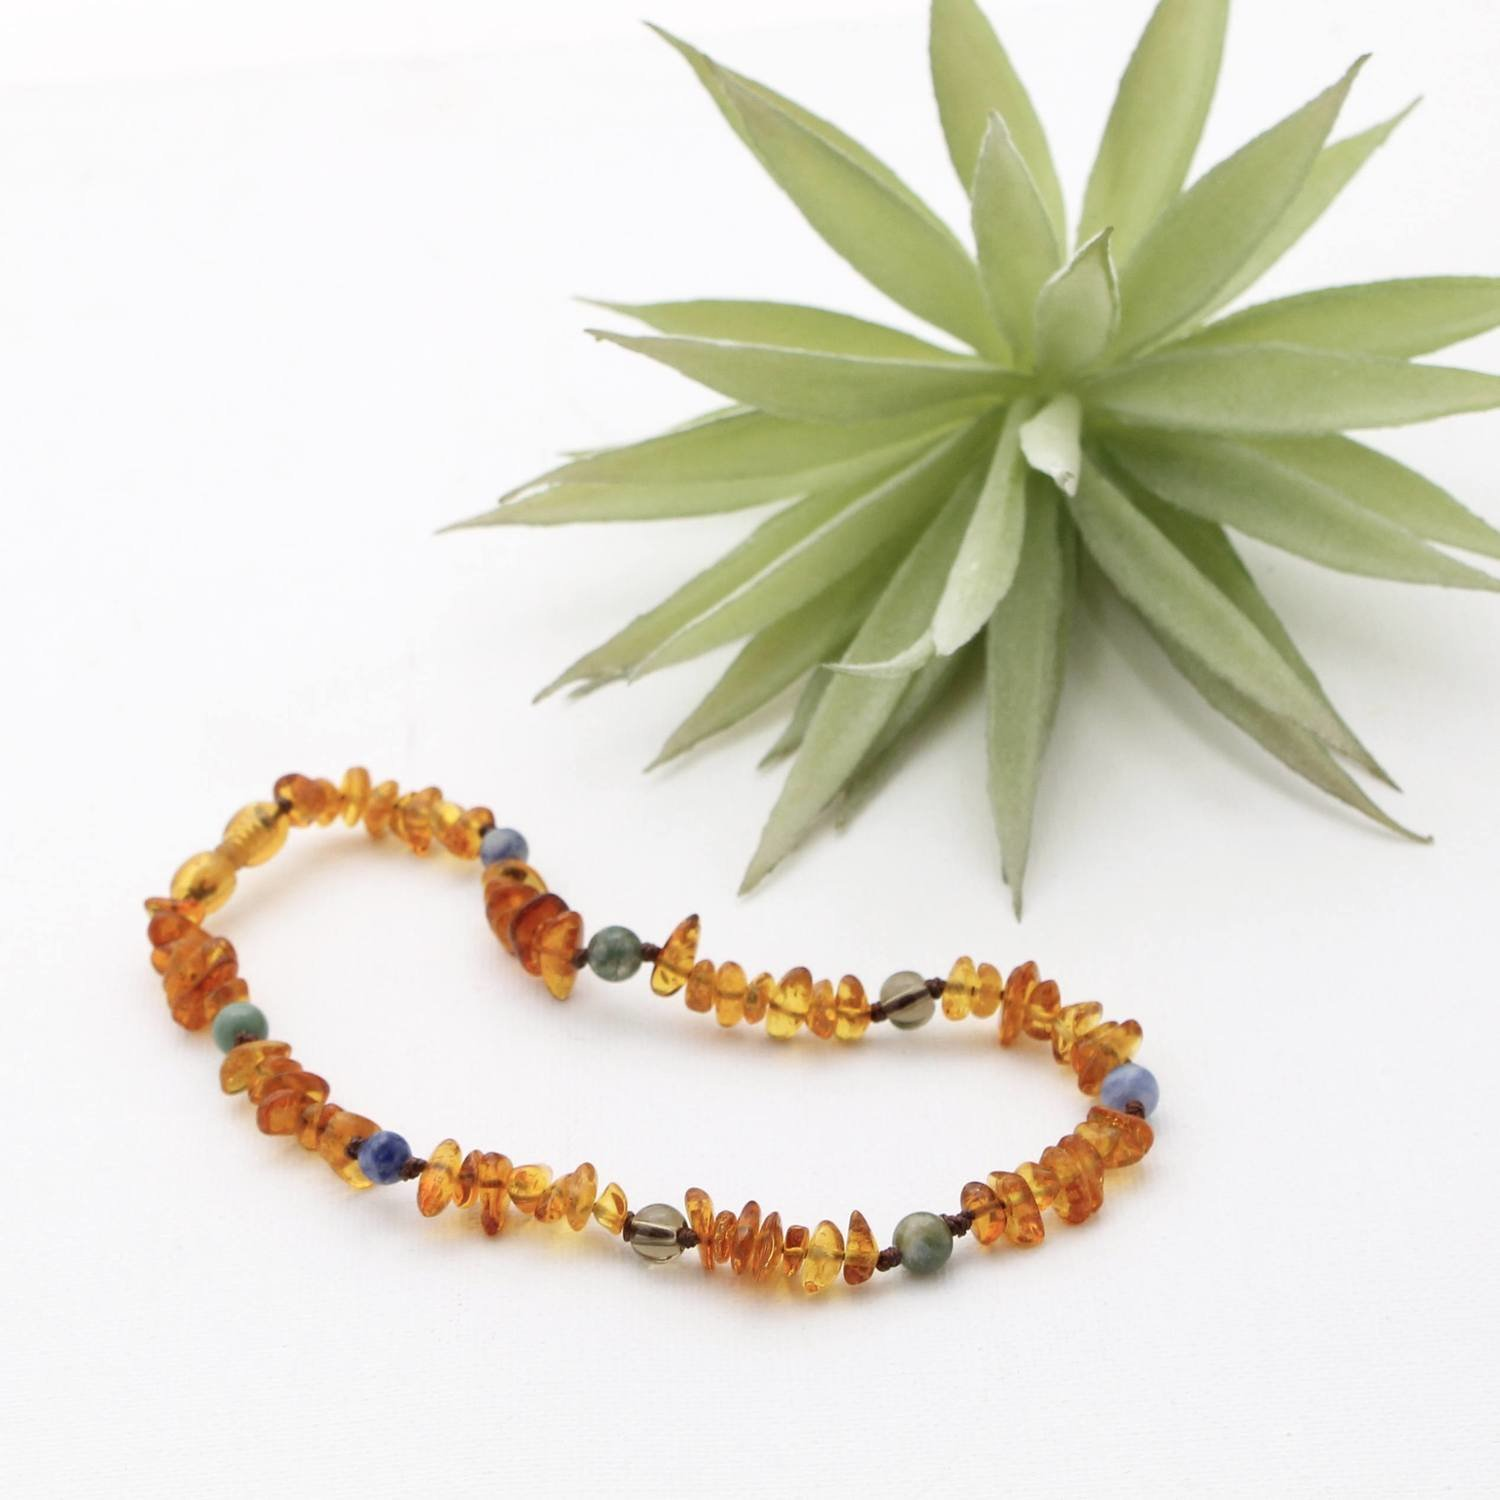 12 Inch Amber Teething Necklace by Beaming Amber Sun